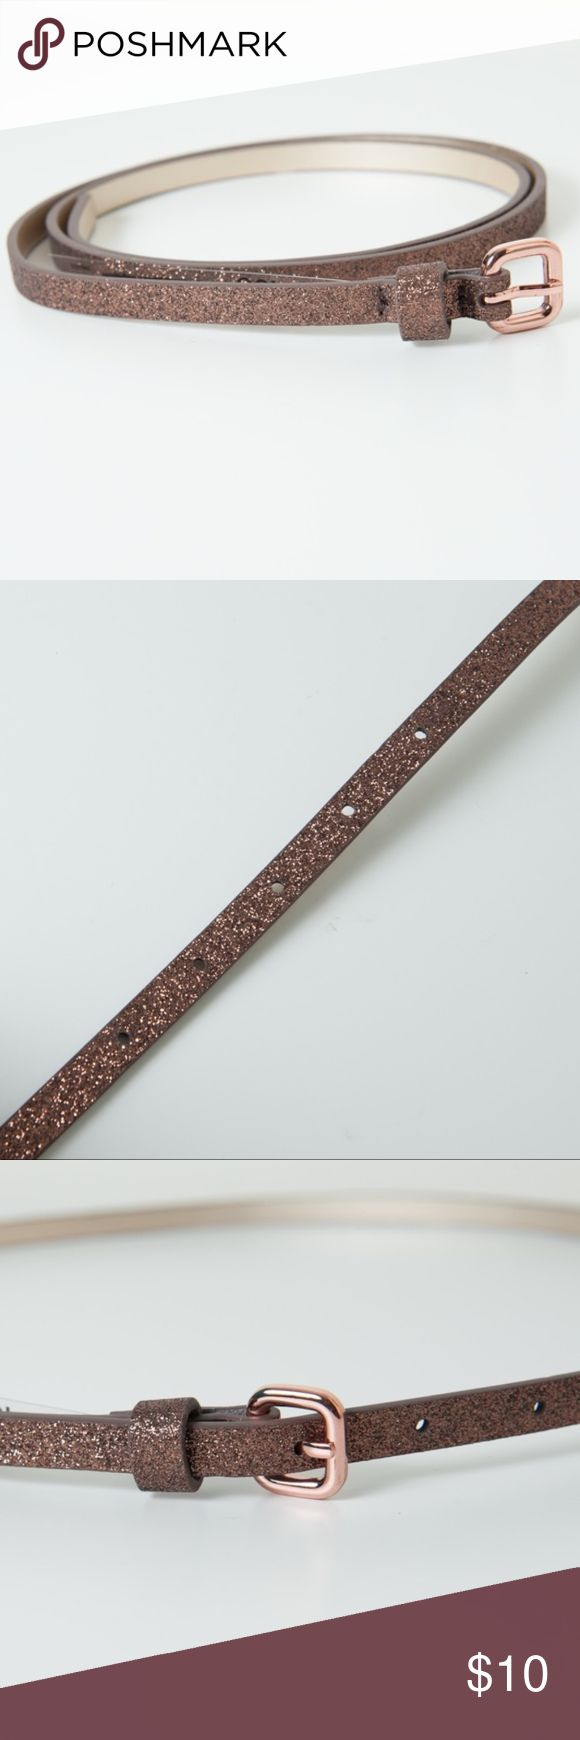 Joe Fresh Glitter Skinny Belt NWOT Bronze Gold Lg Bronze/Gold glitter belt from Joe Fresh. New without tags. Get your daily dose of glamour with a glittery belt. Faux leather with glitter, 100% polyurthane. Large Joe Fresh Accessories Belts